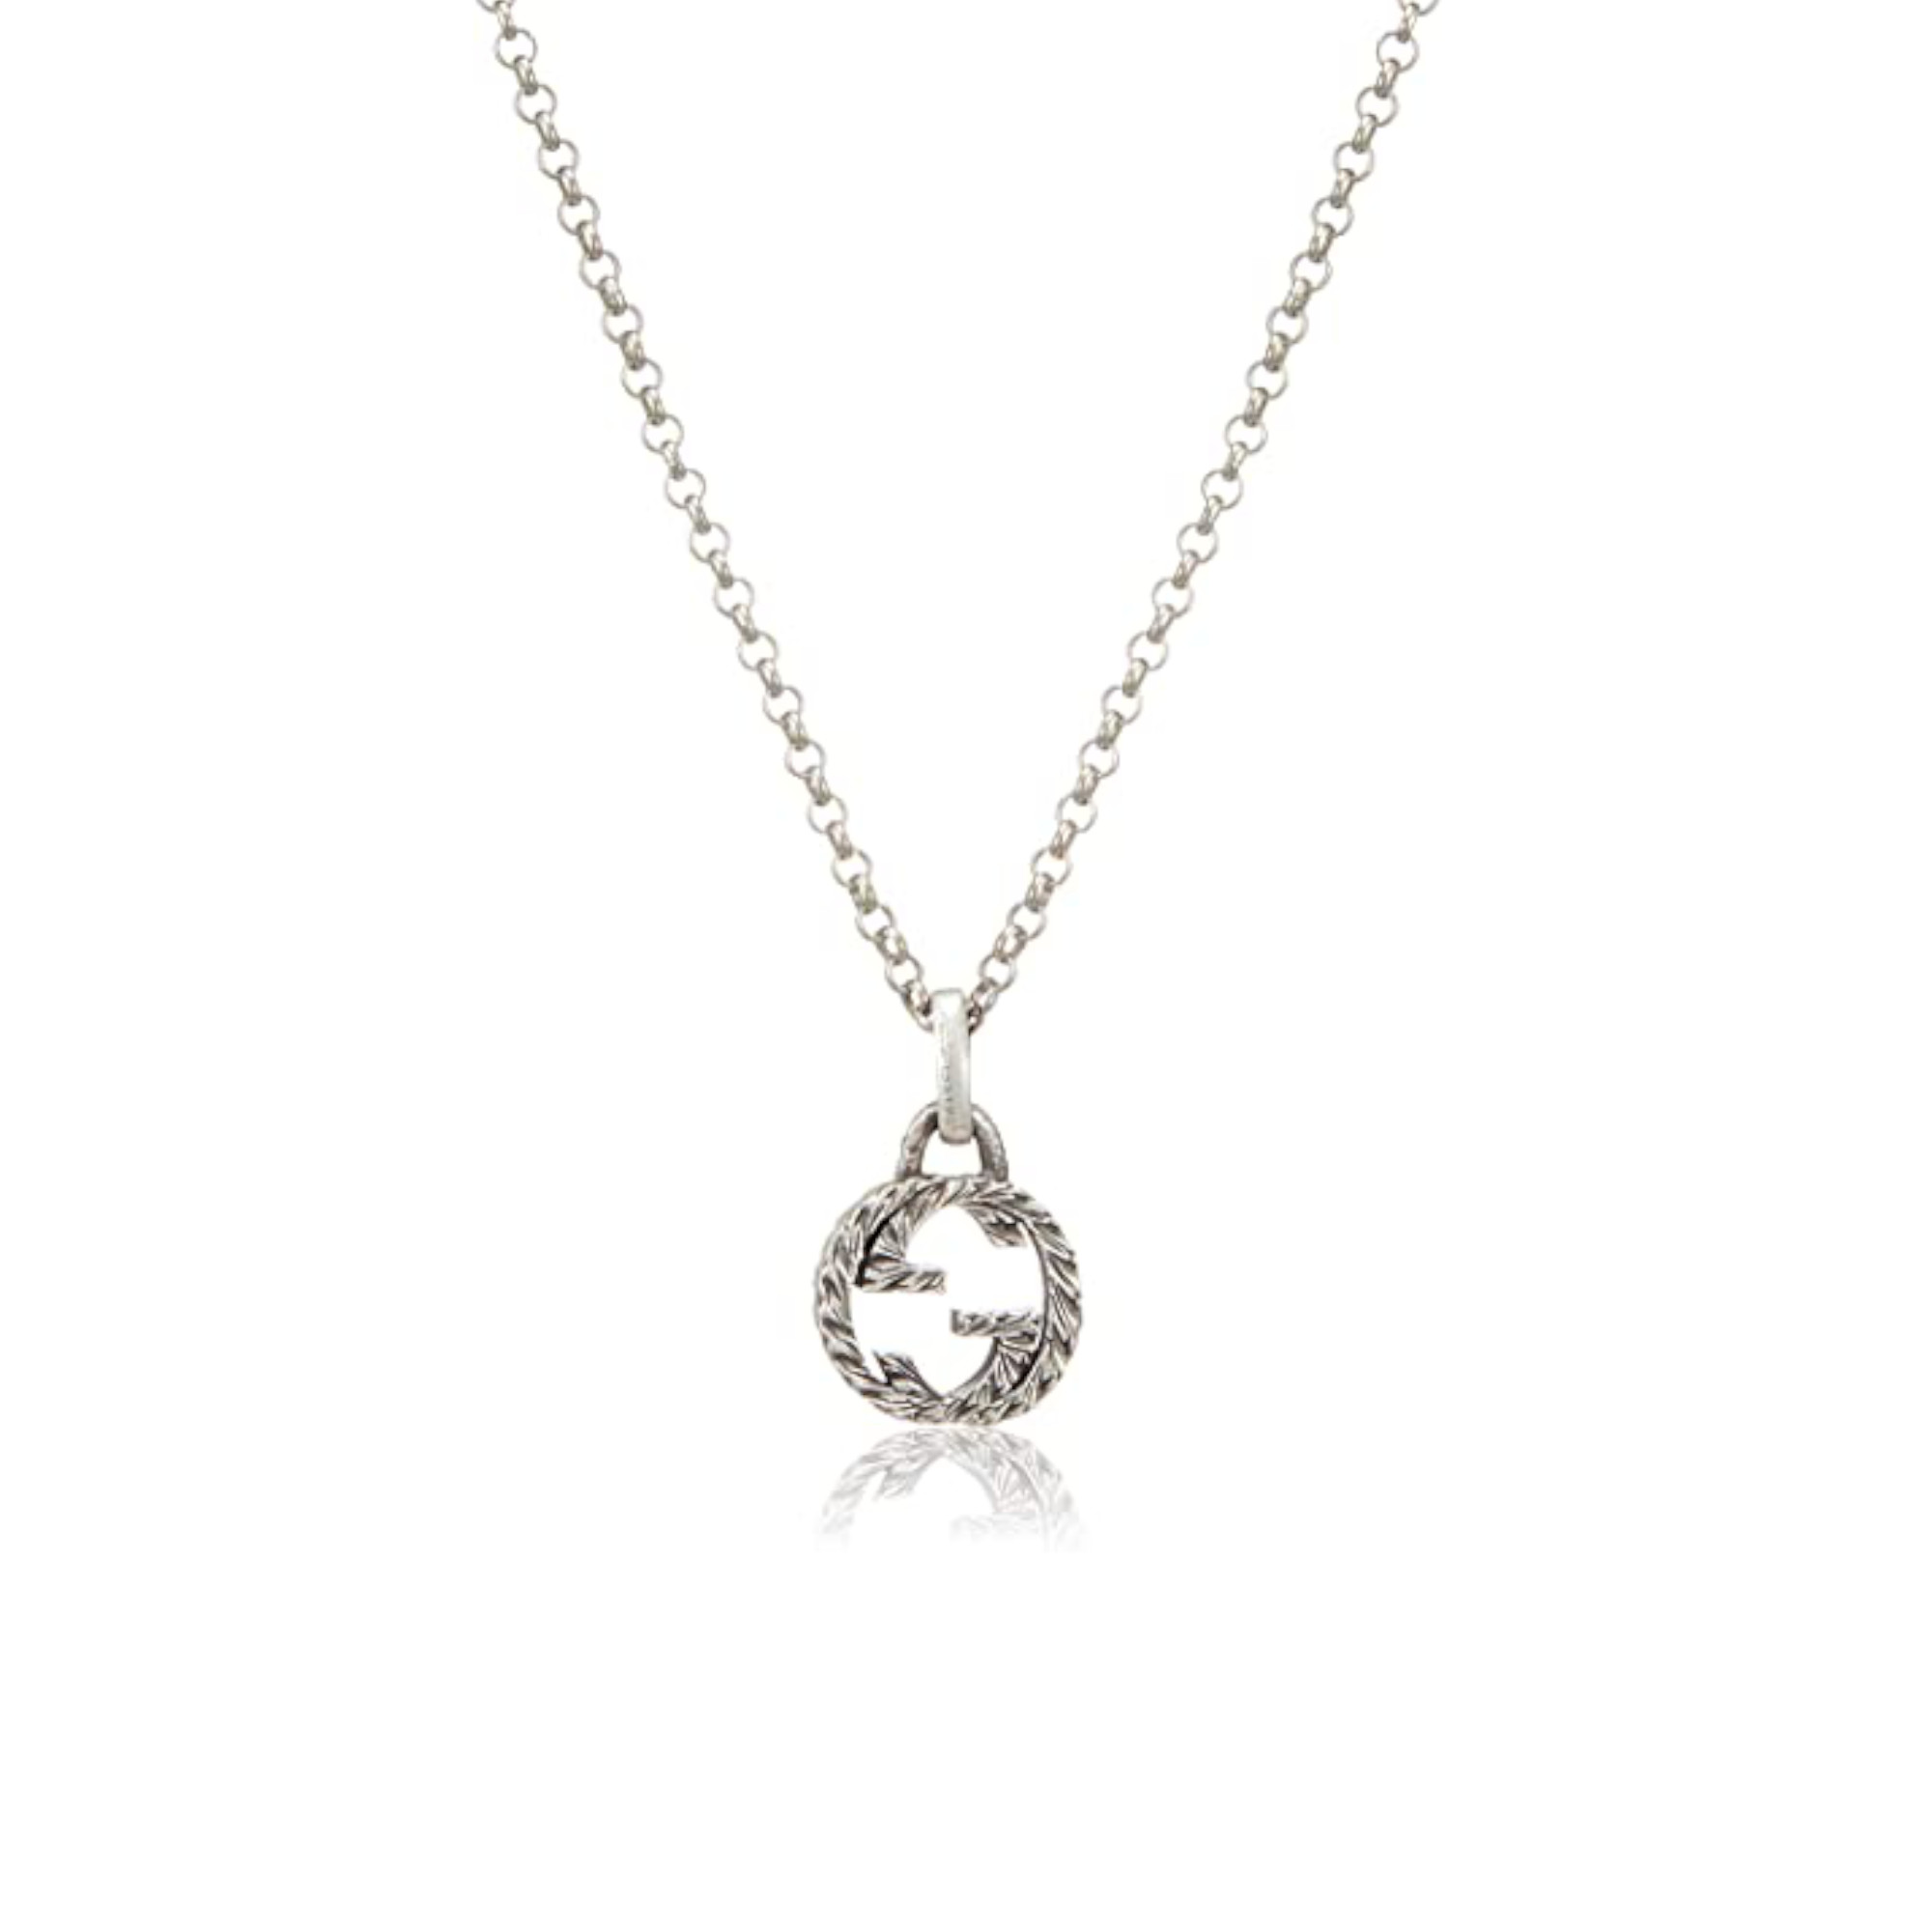 45cm Guarantees the originality 925 sterling silver chain